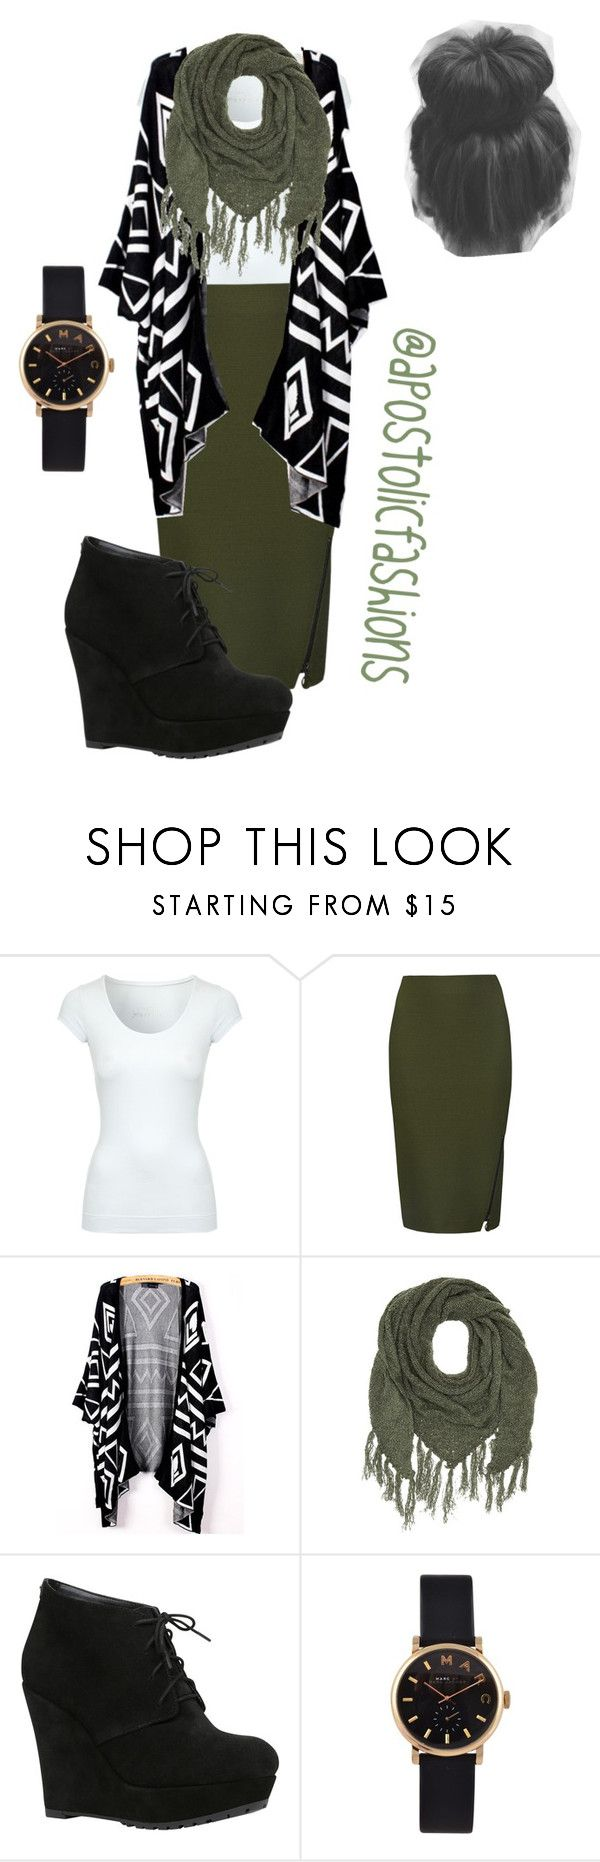 """""""Apostolic Fashions #962"""" by apostolicfashions on Polyvore featuring Jane Norman, M&S Collection, Charlotte Russe, ALDO and Marc by Marc Jacobs"""